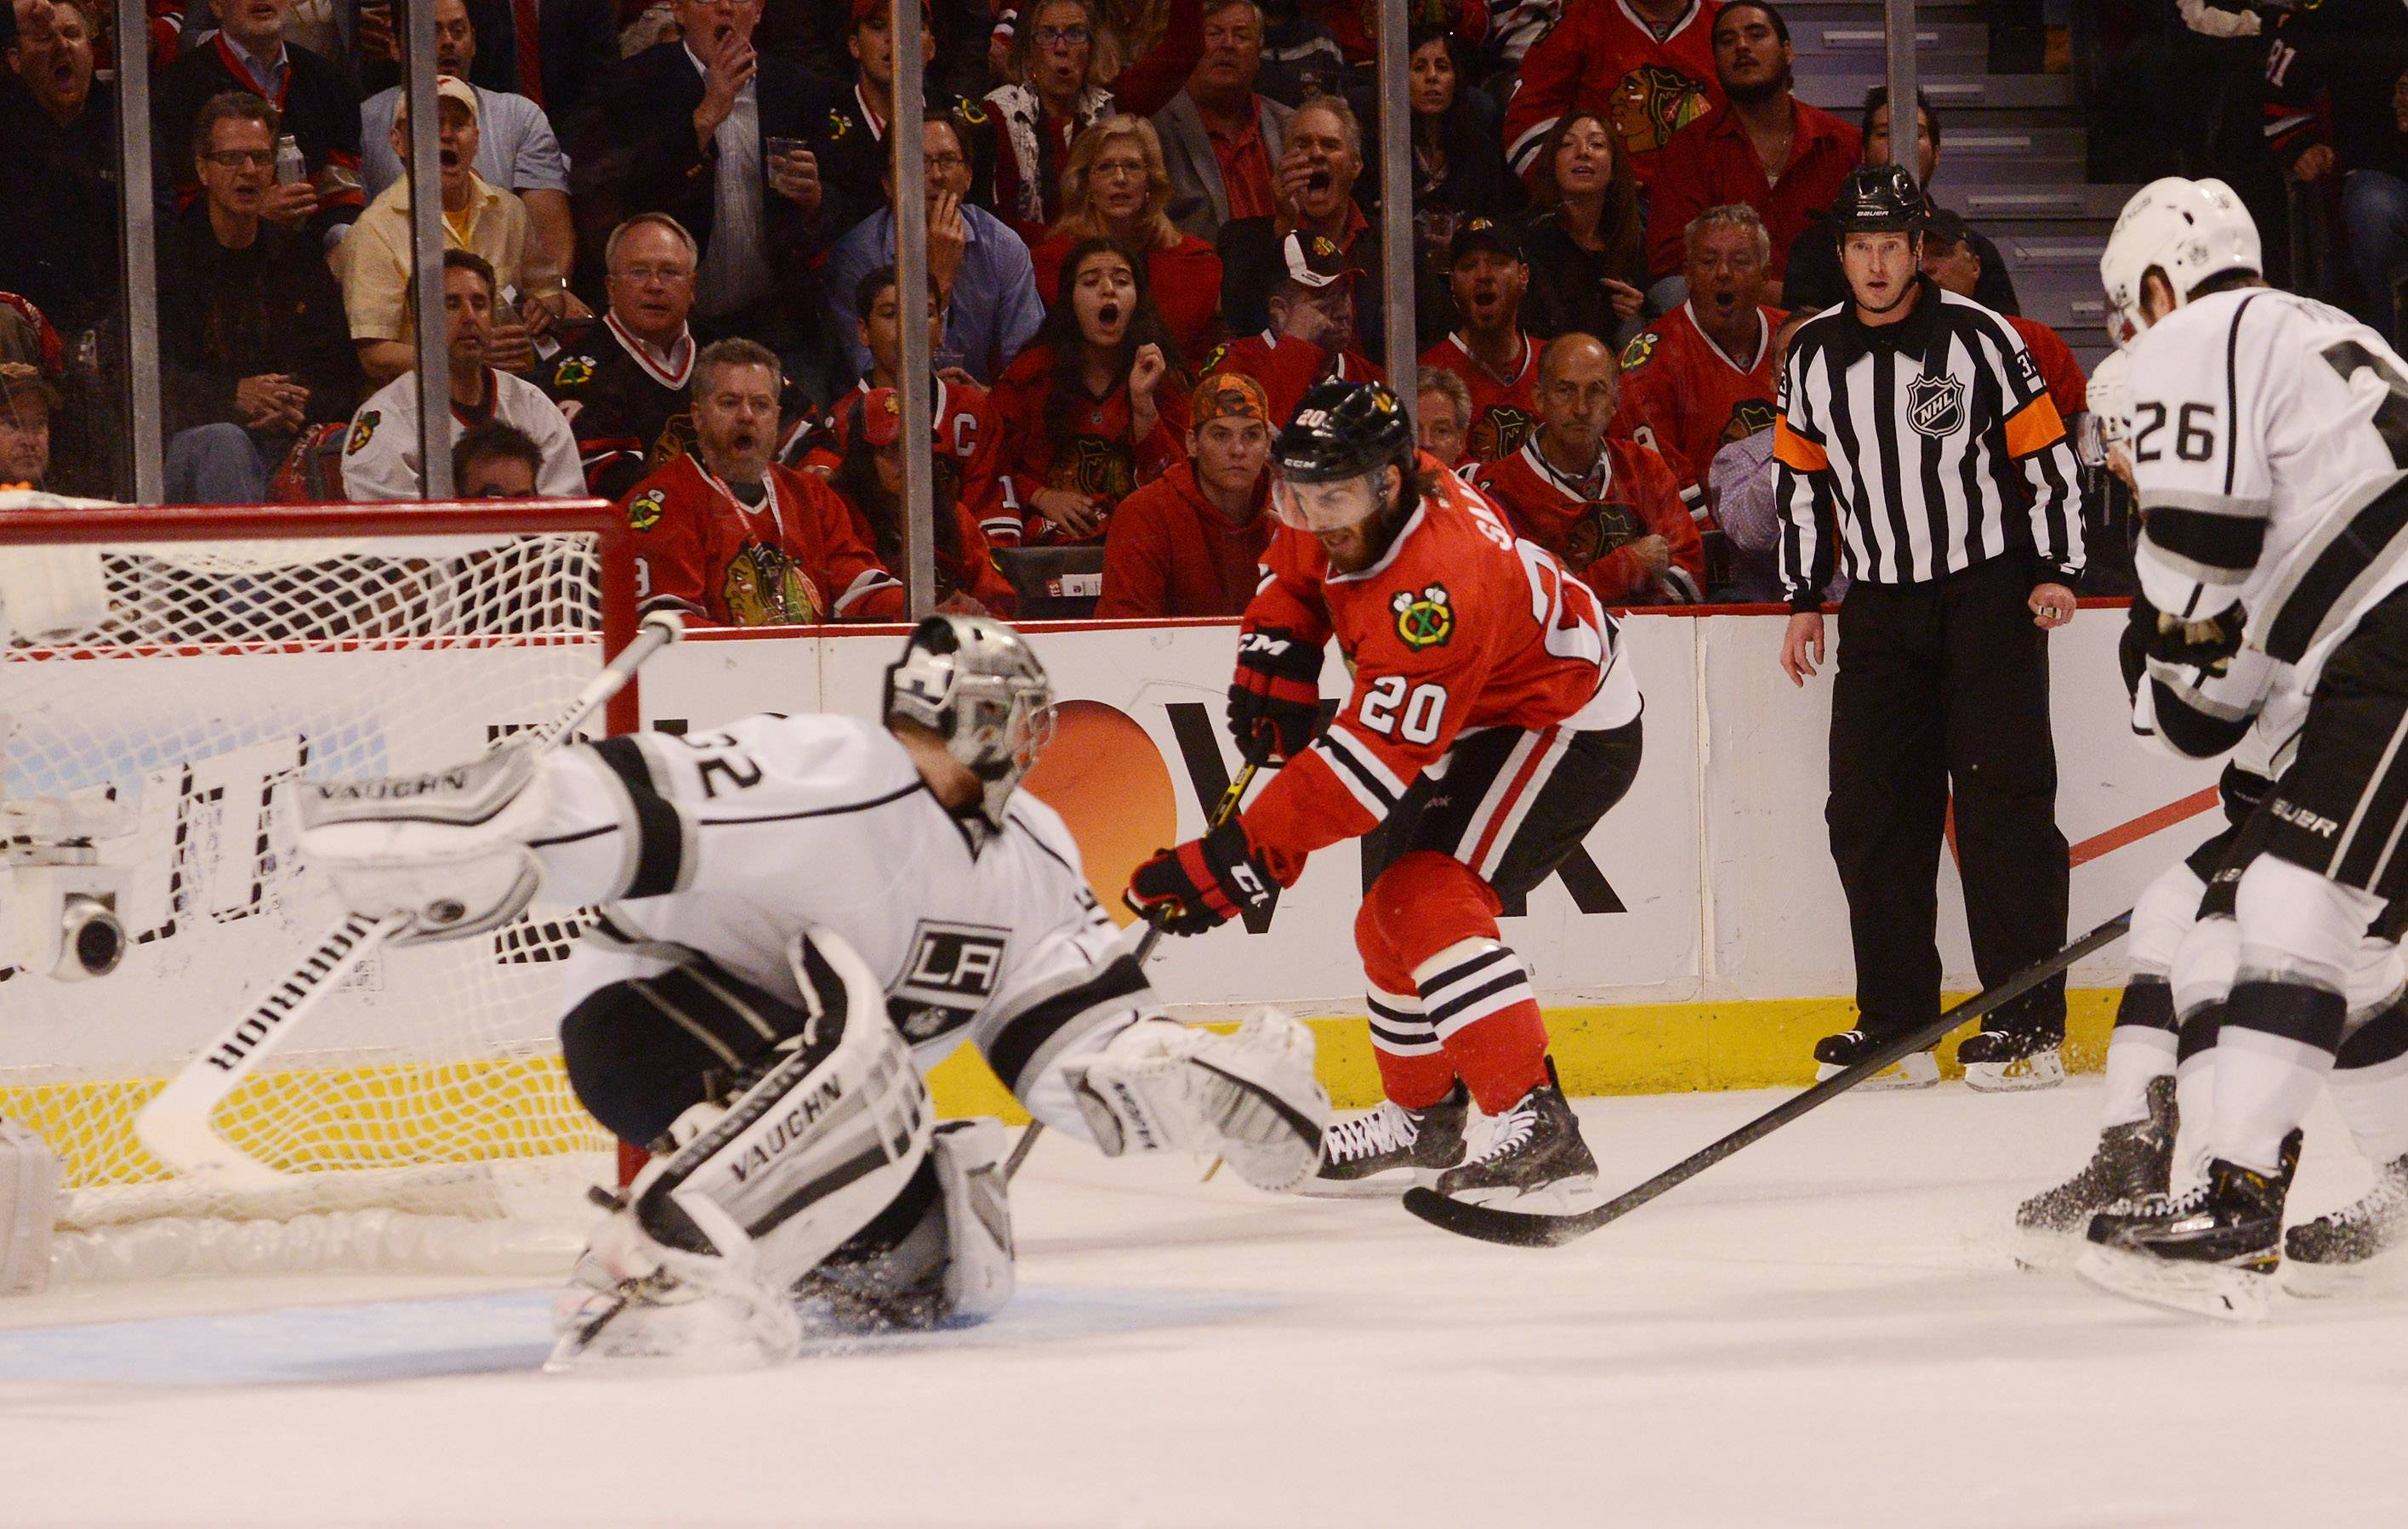 Day to remember for Saad